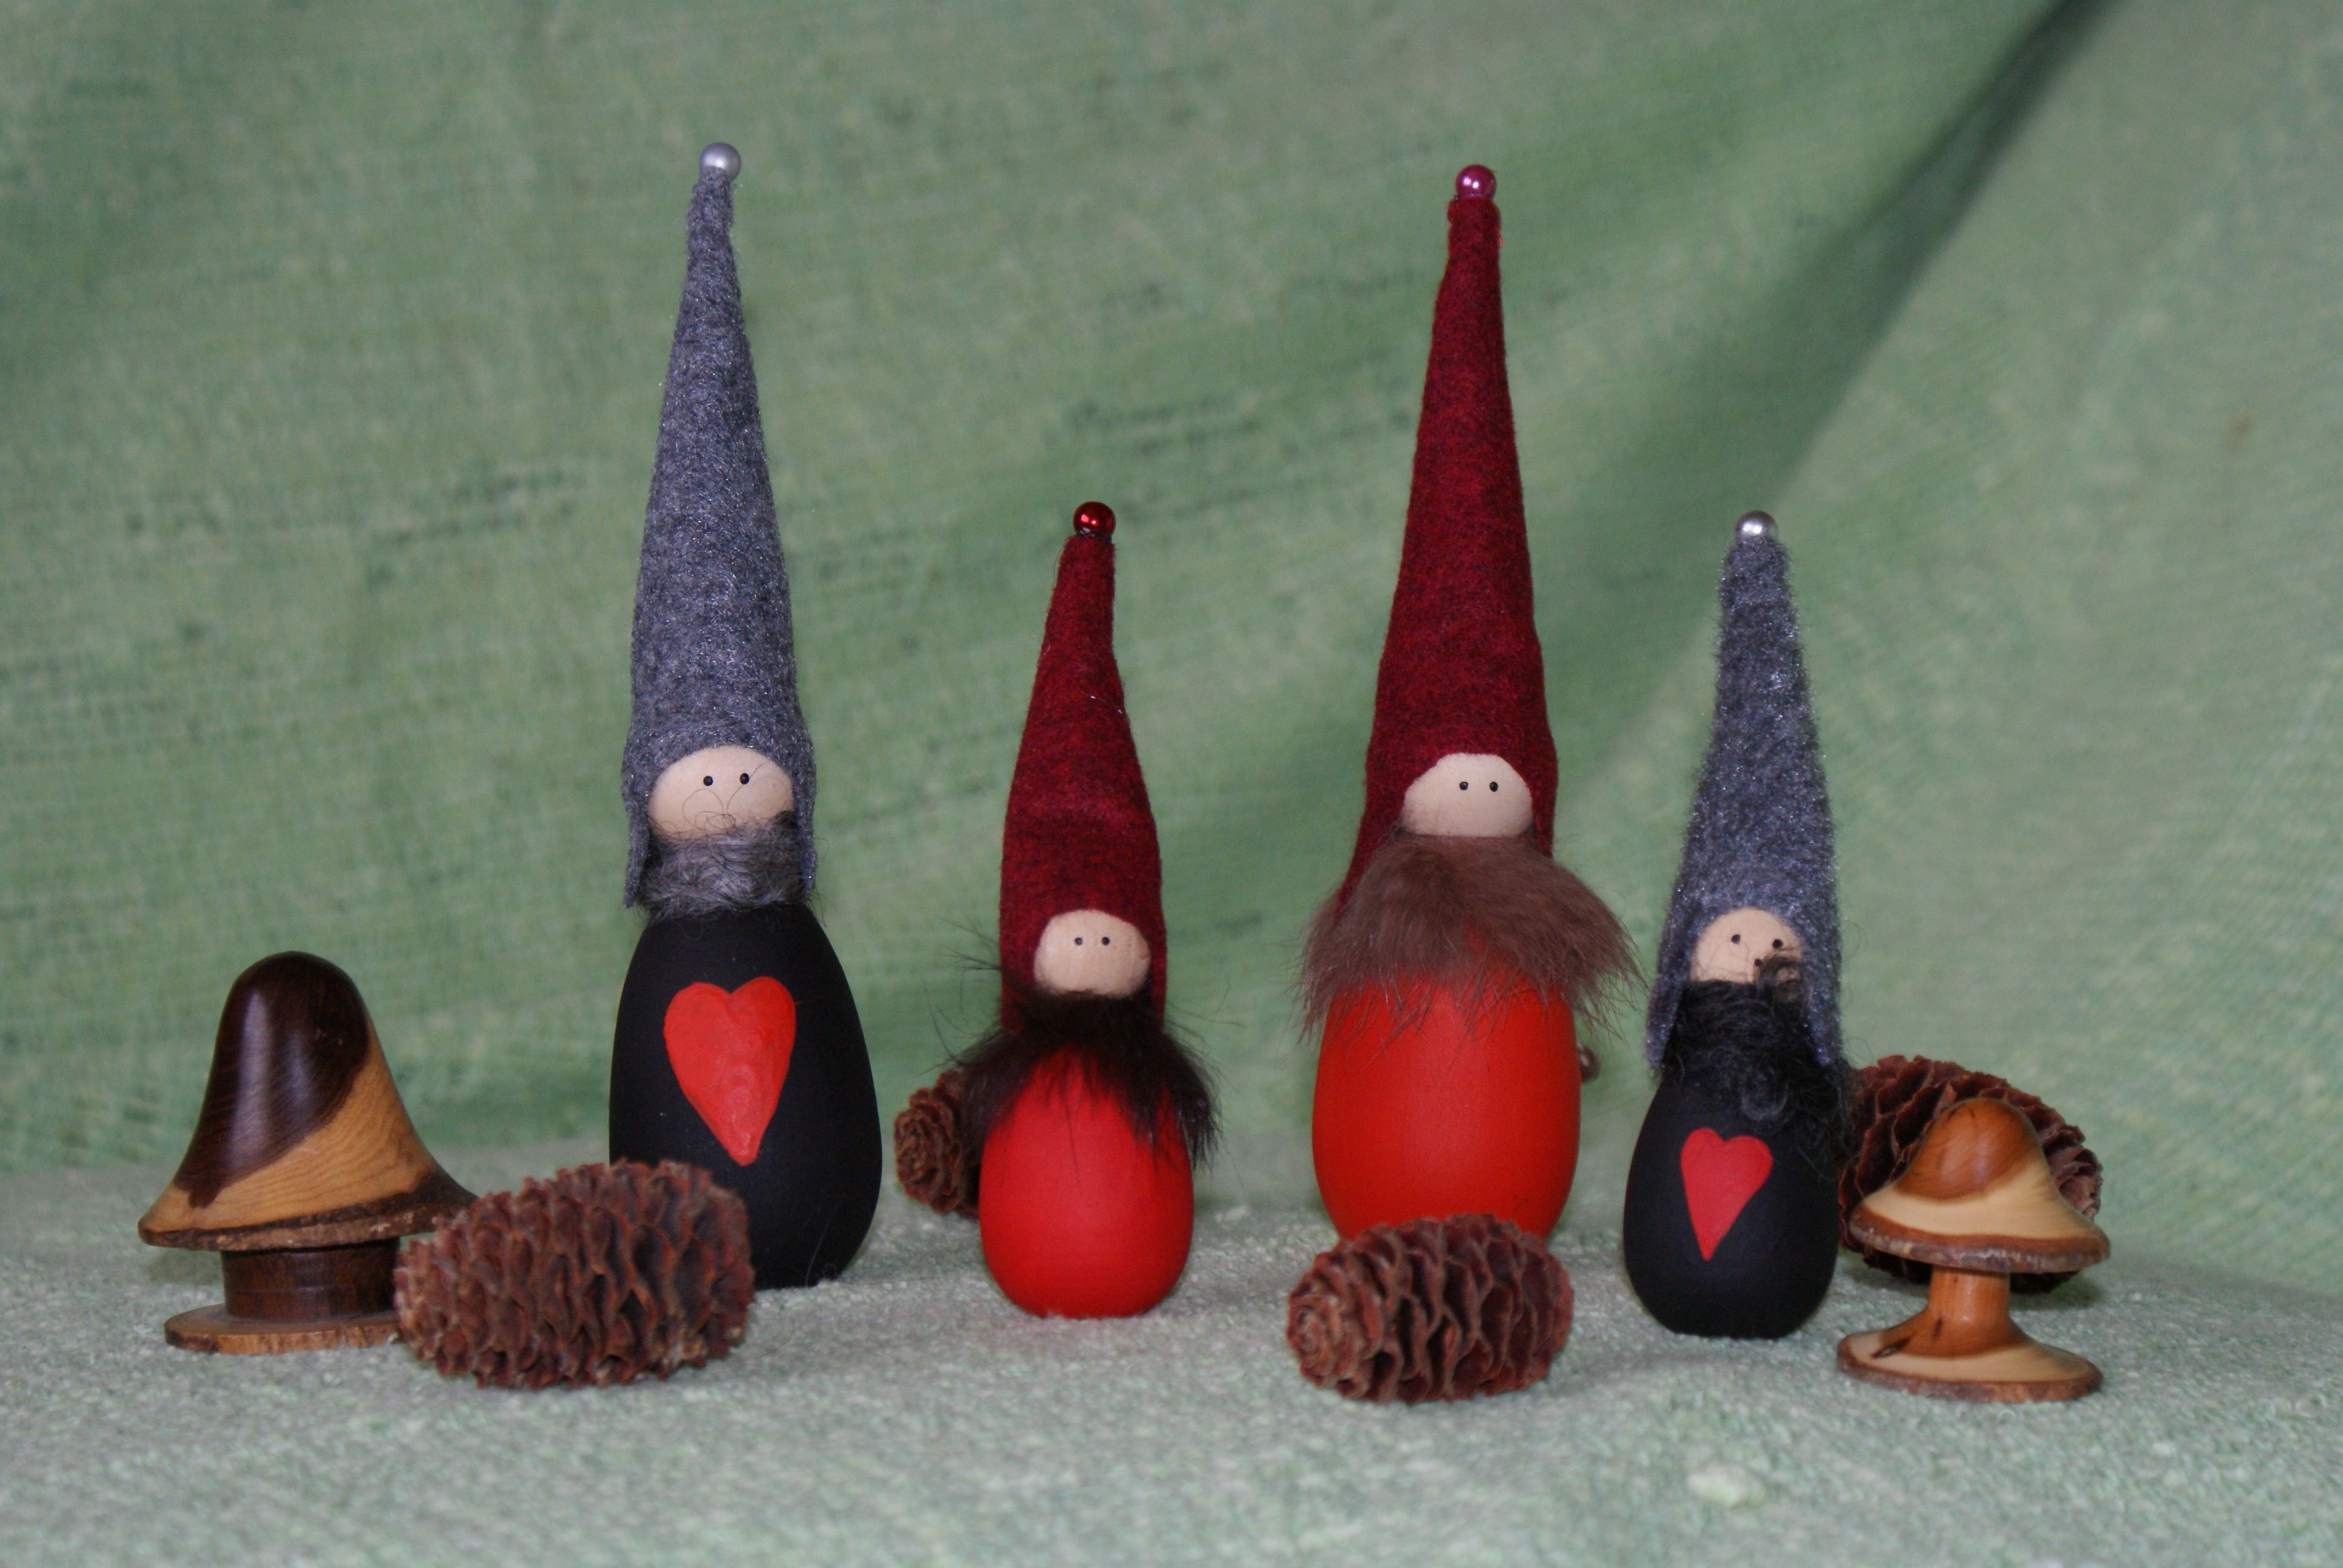 Group Nisse in Red or Black  by  Nordic Charm in the Nisse section. www.nordiccharm.co.uk